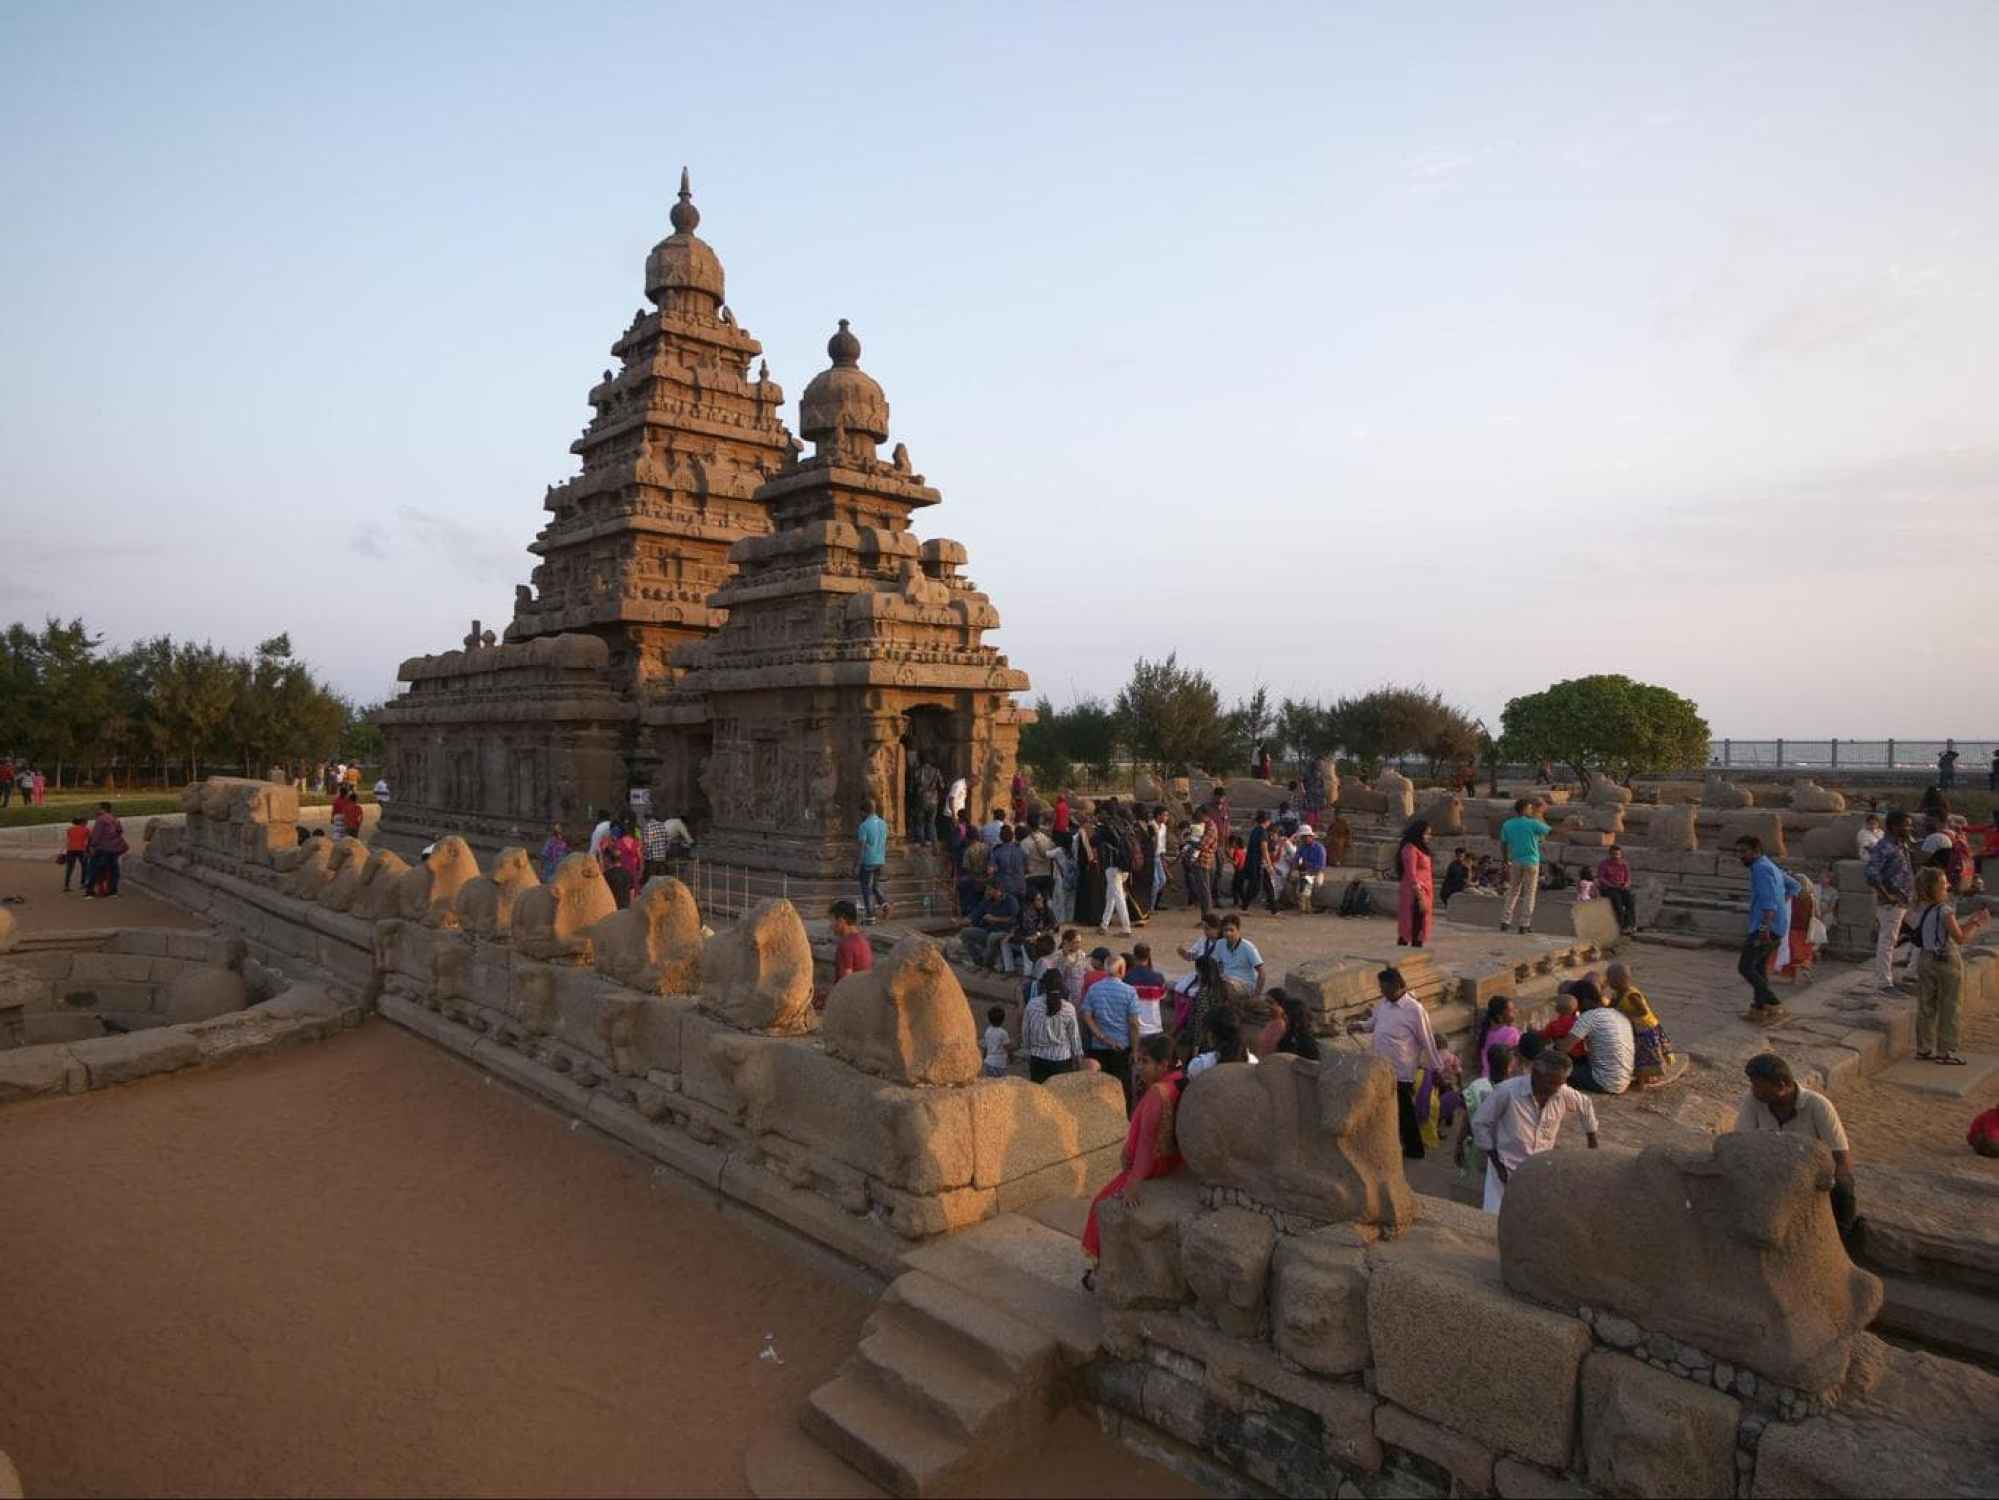 Shore Temple relic